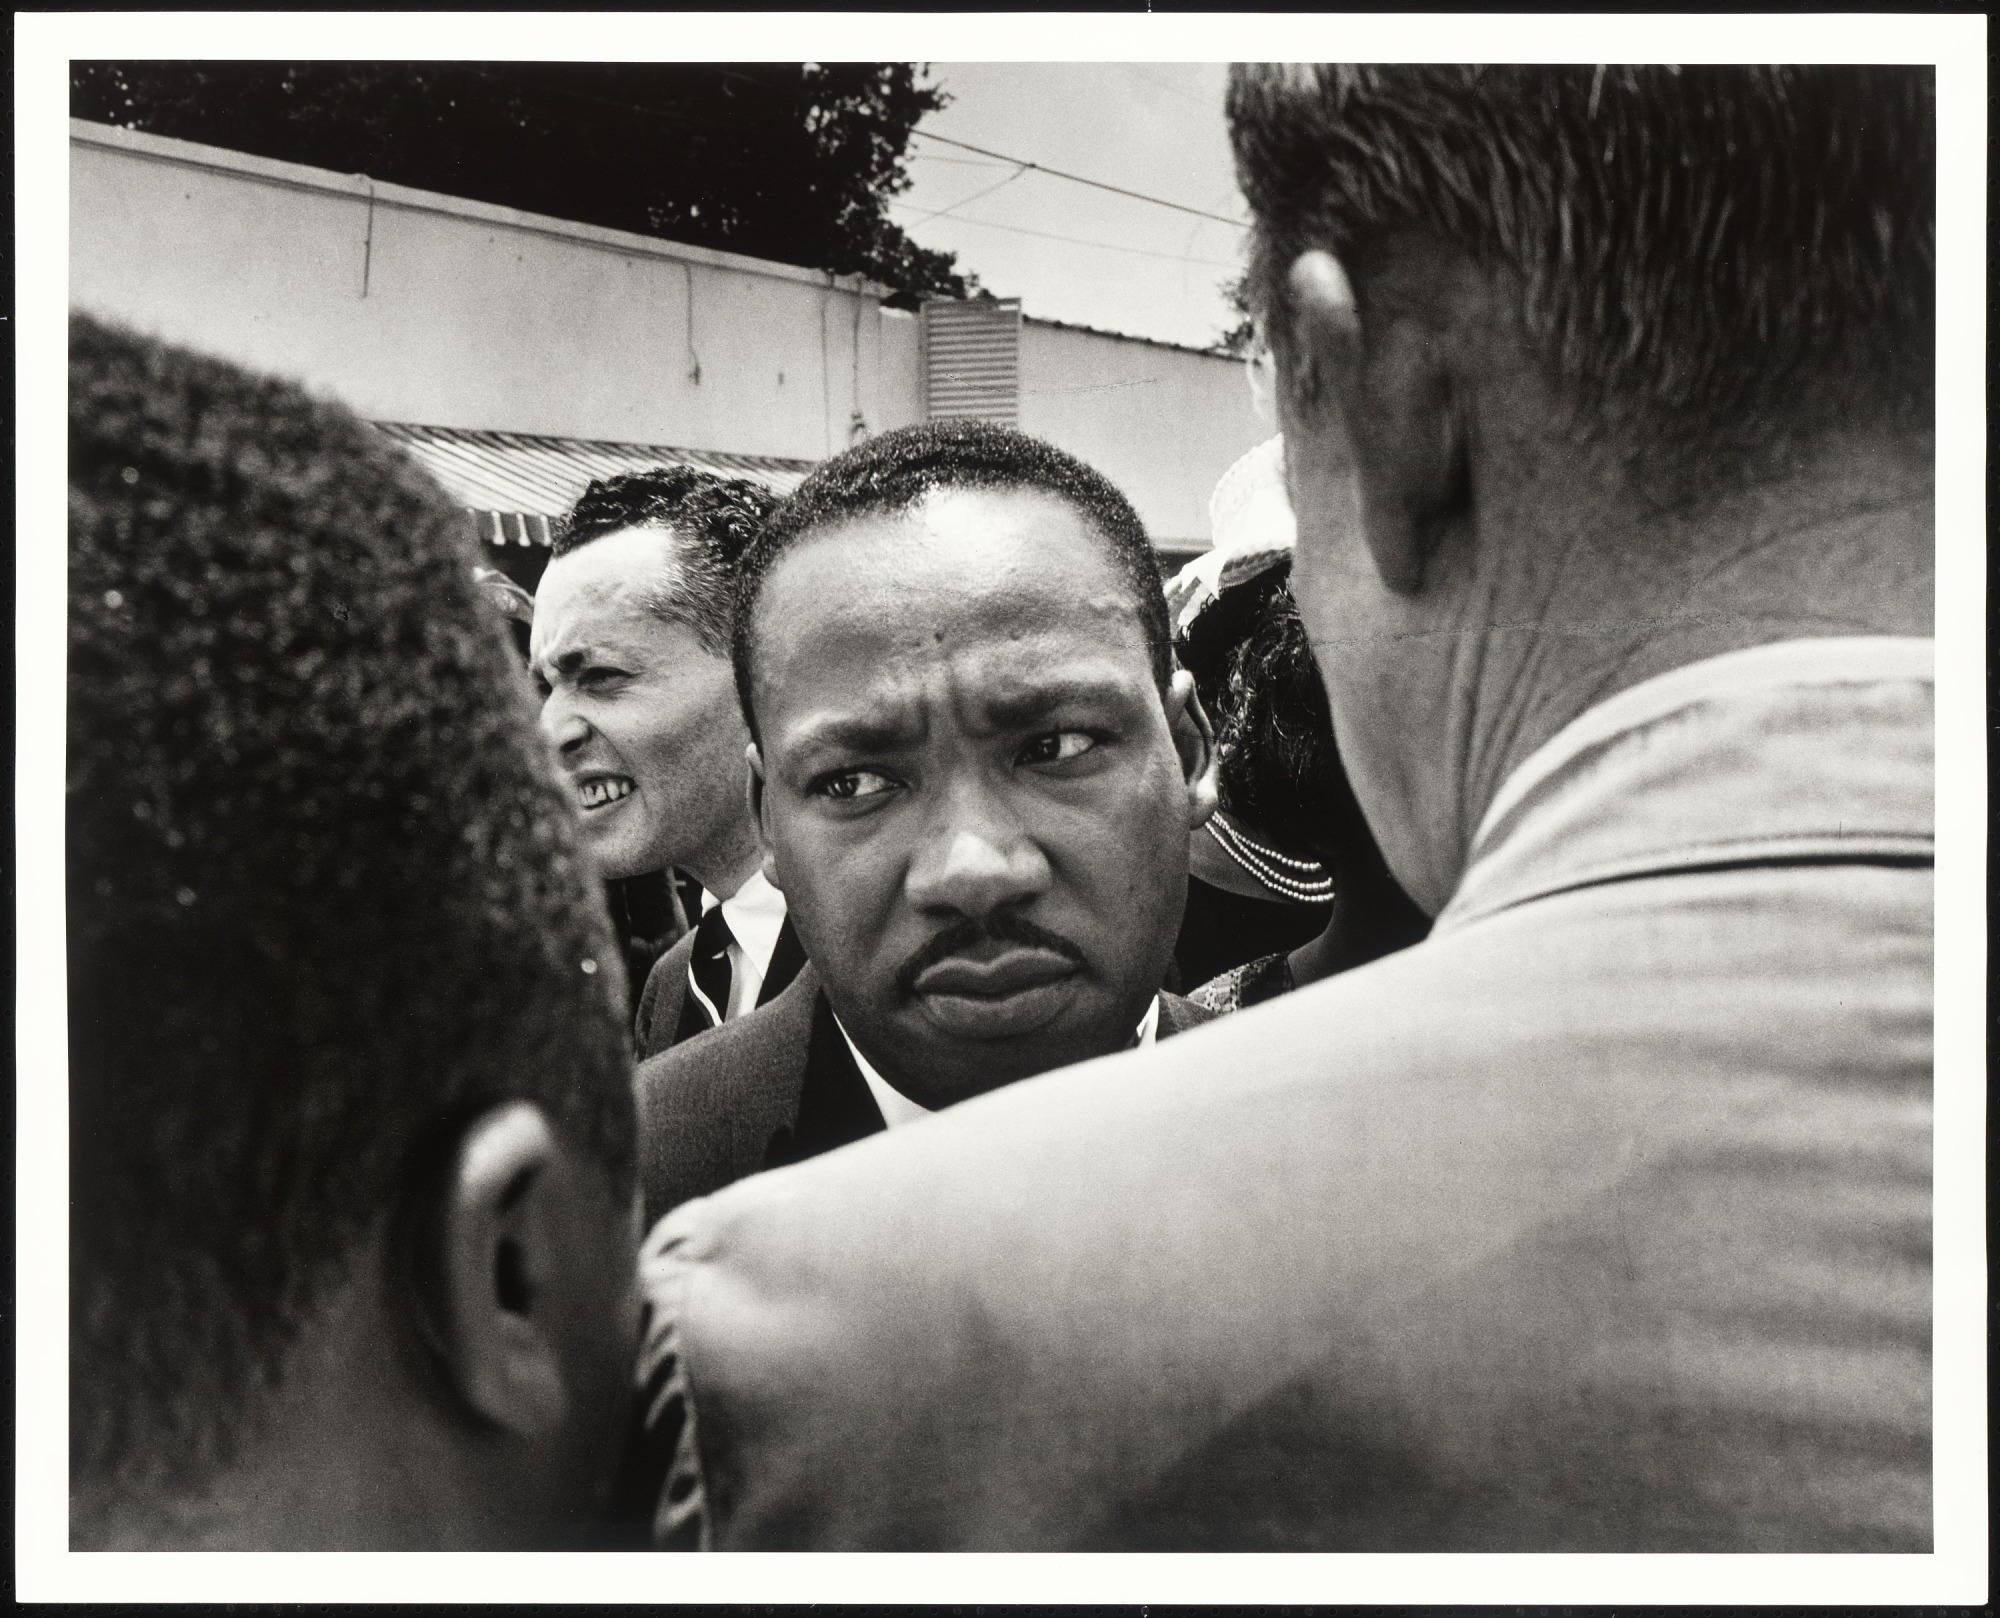 Dr Martin Luther King Jr Is Stopped By Police At Medgar Evers